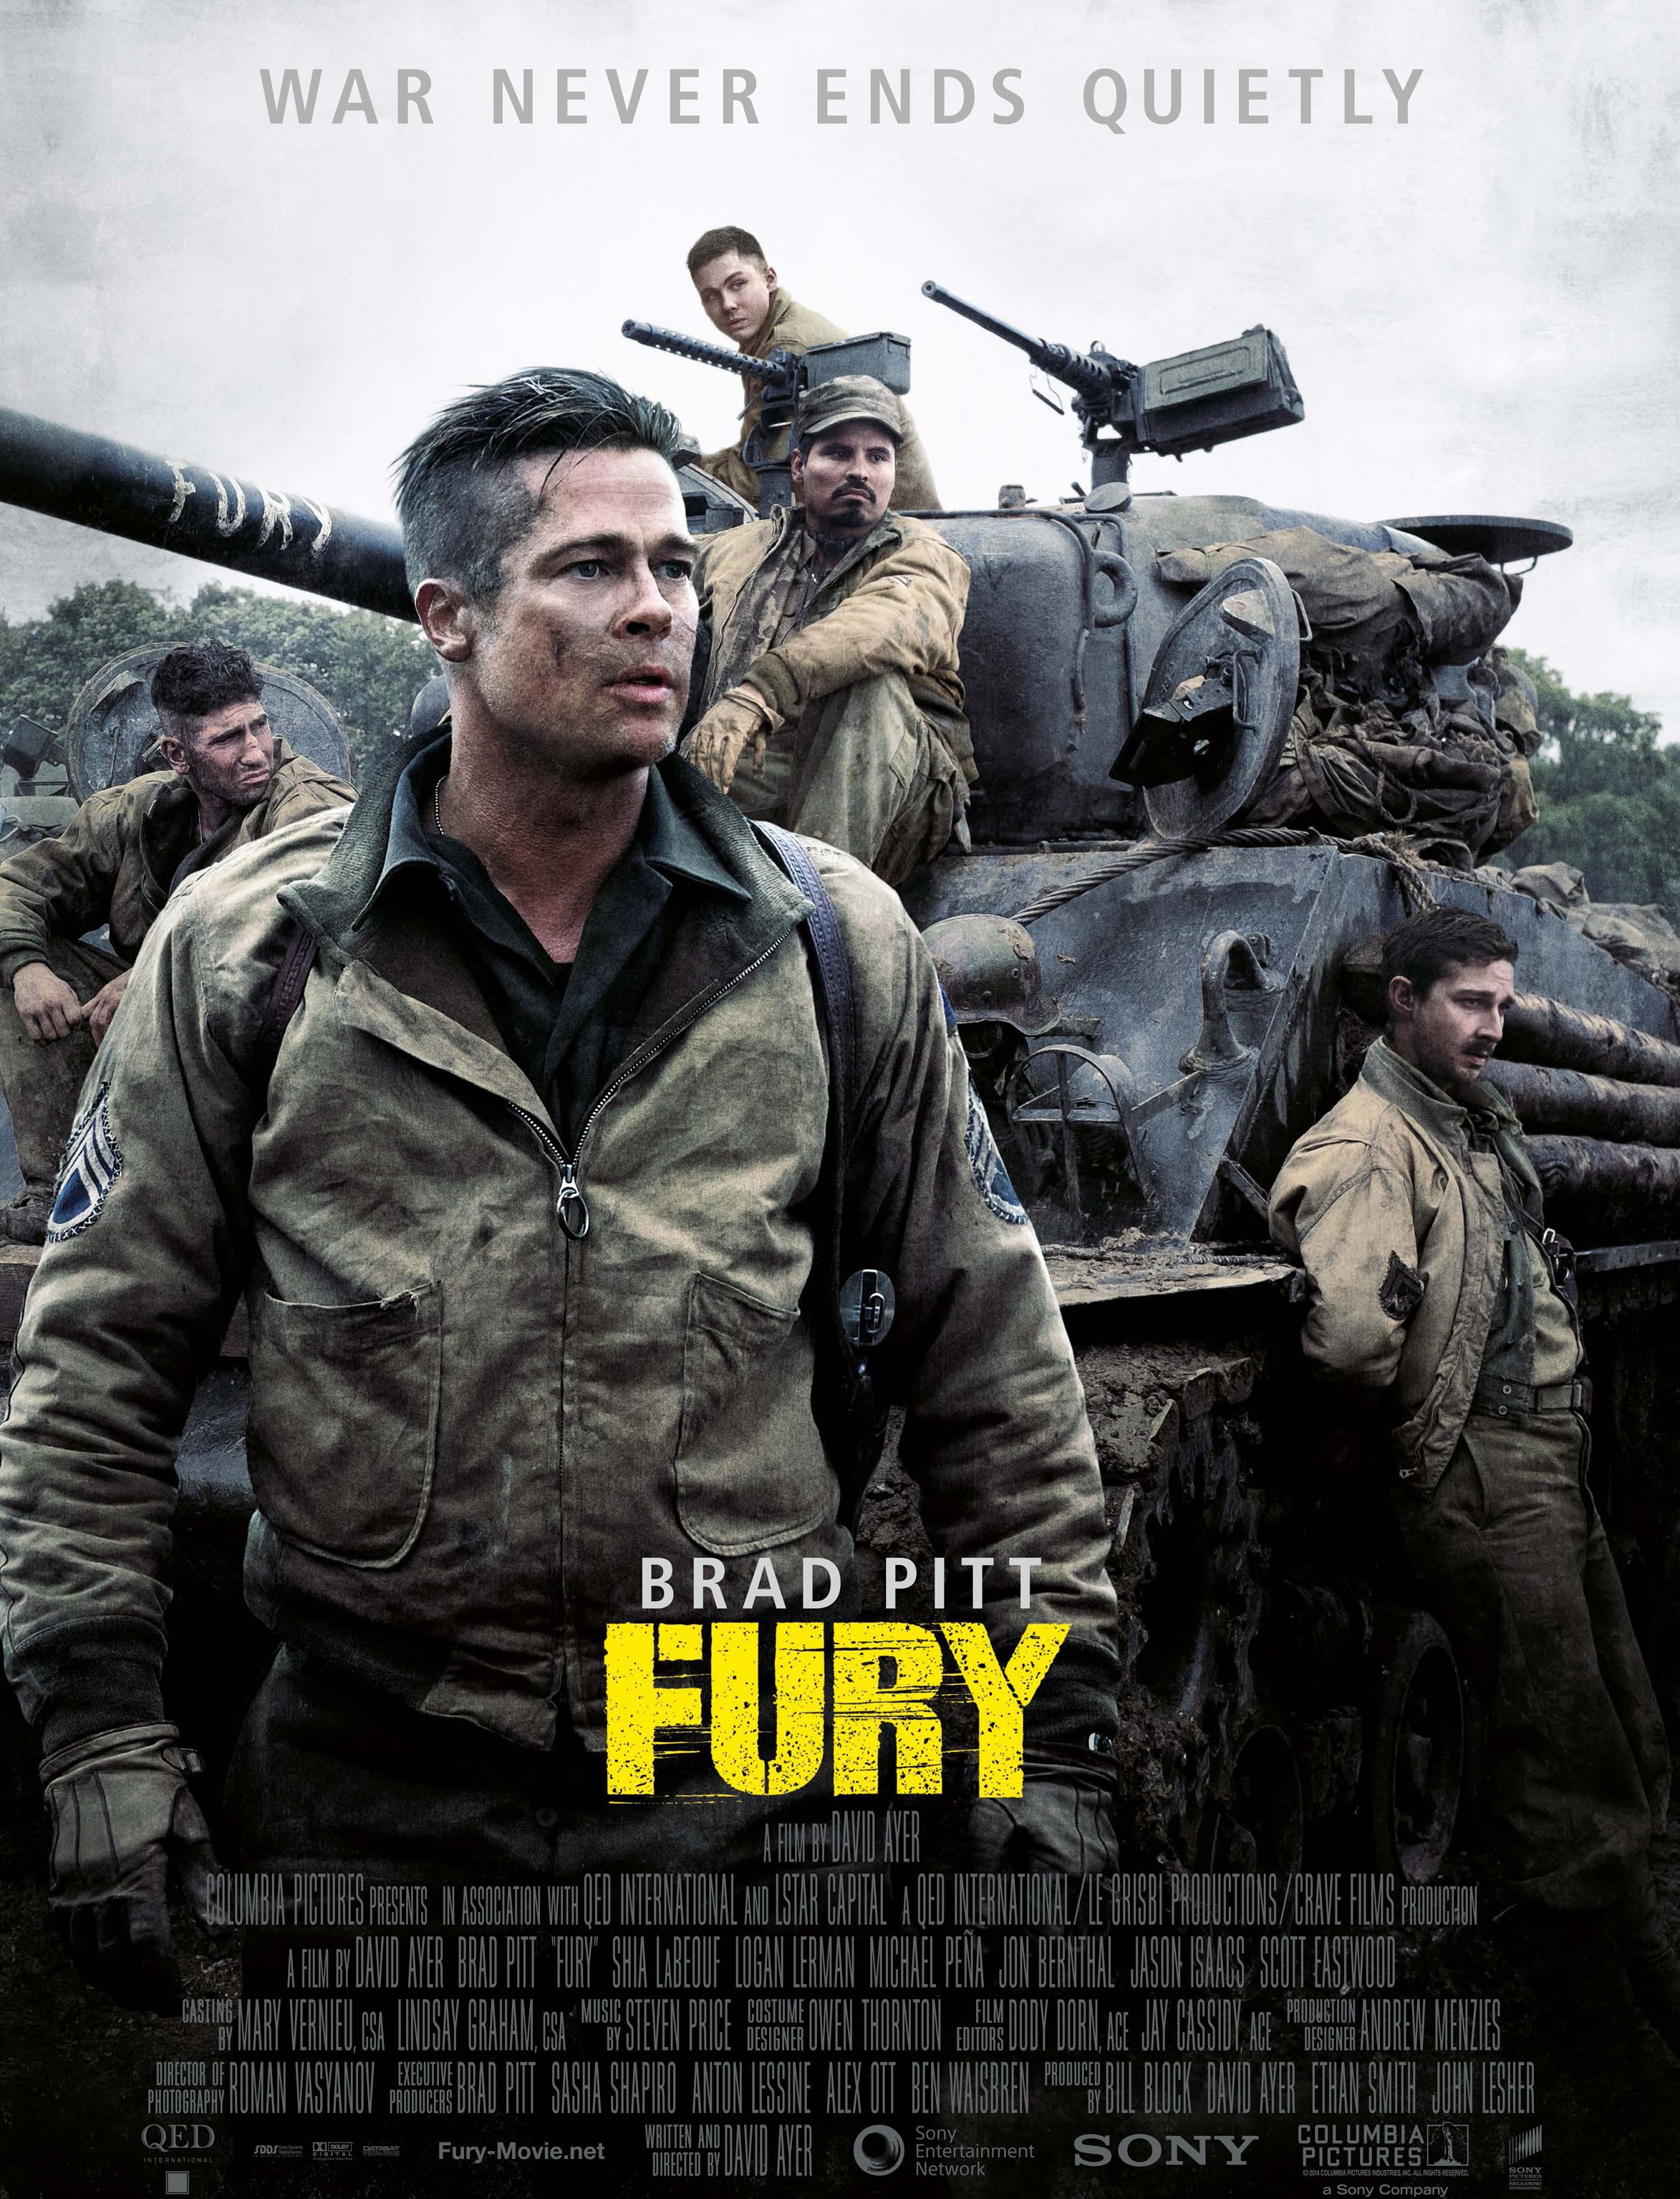 Fury poster - War Never Ends Quietly